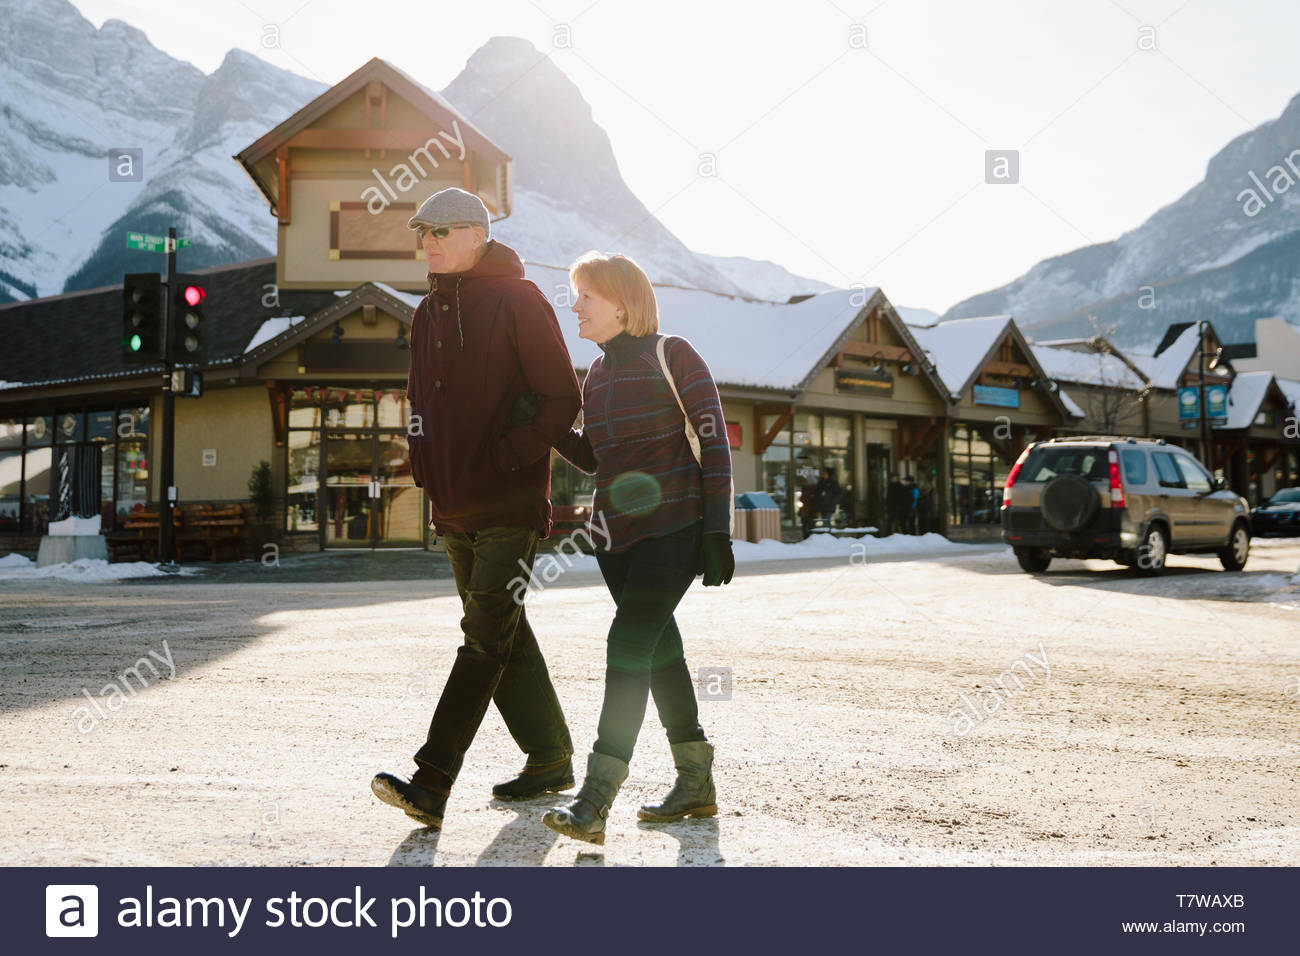 Senior couple walking on sunny, snowy street in mountain town - Stock Image